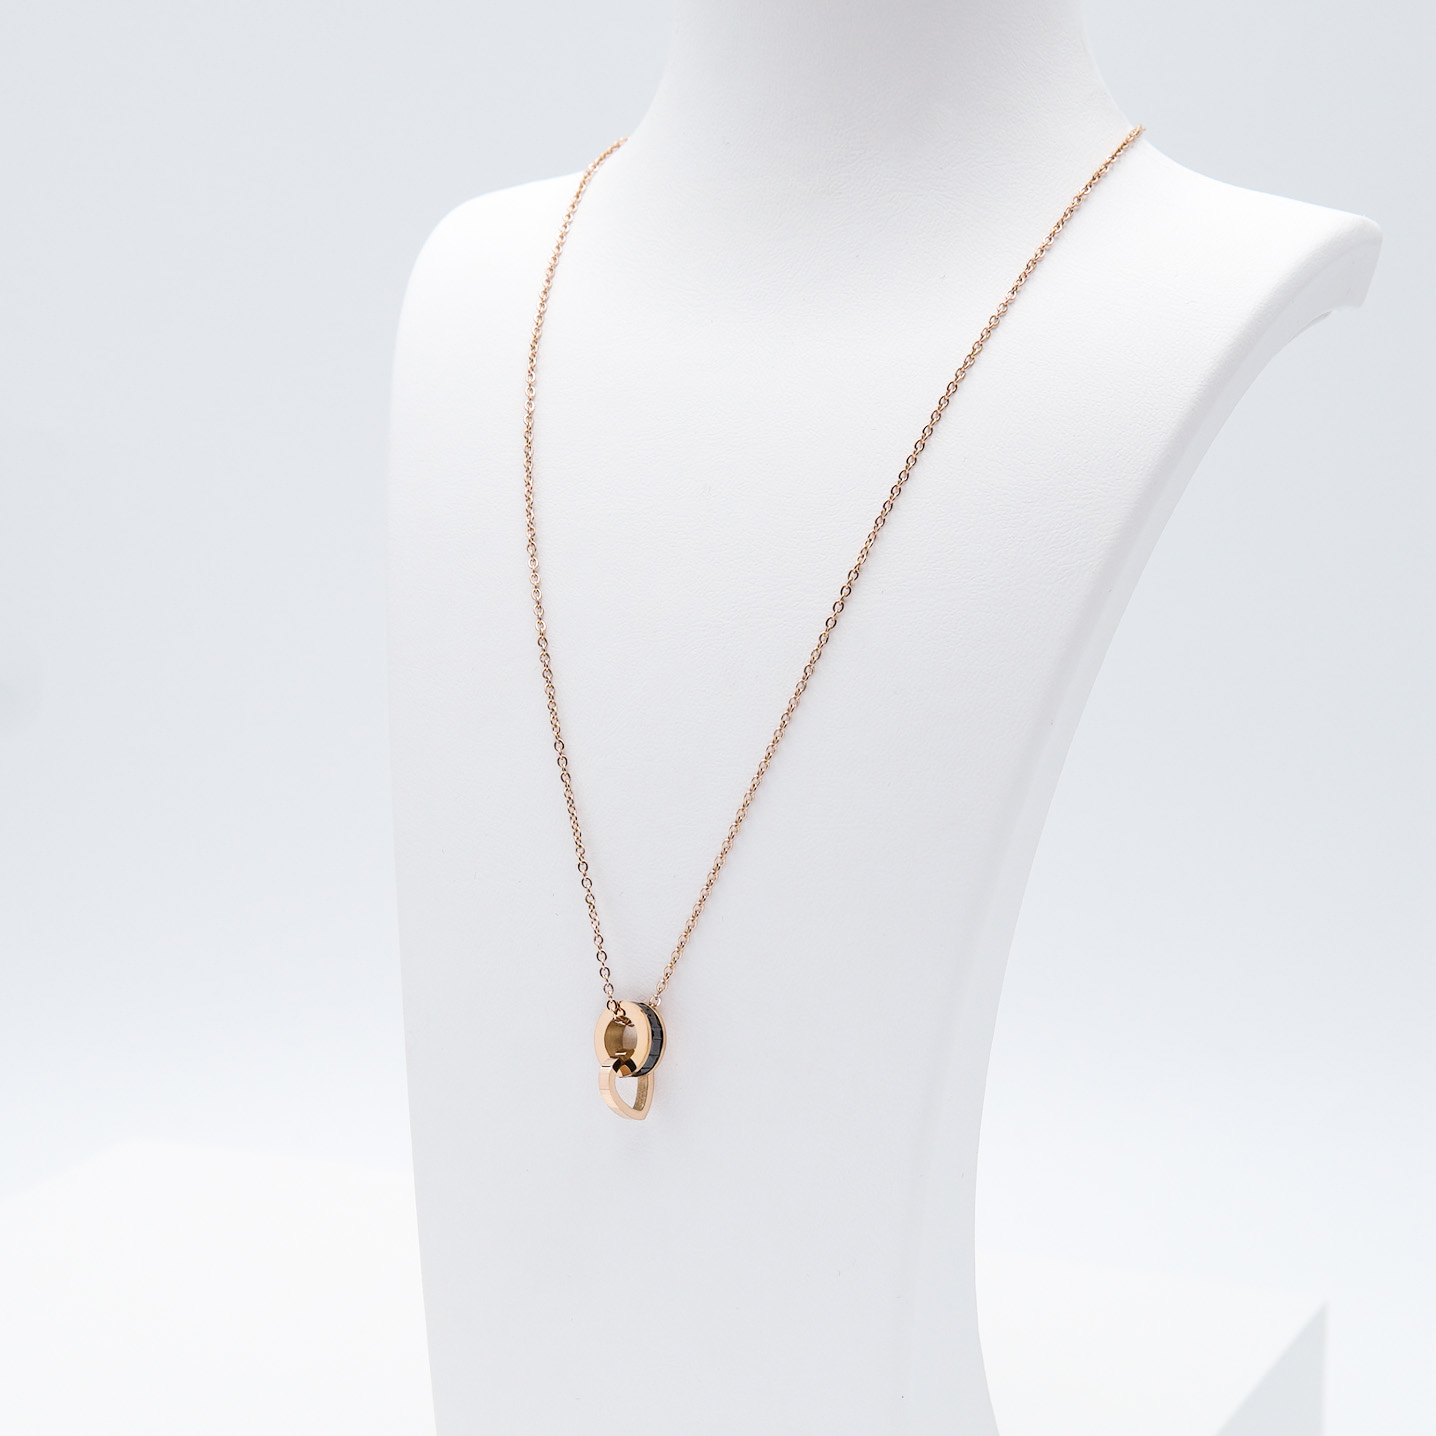 4- Night Memories Rose Edition Halsband Modern and trendy Necklace and women jewelry and accessories from SWEVALI fashion Sweden